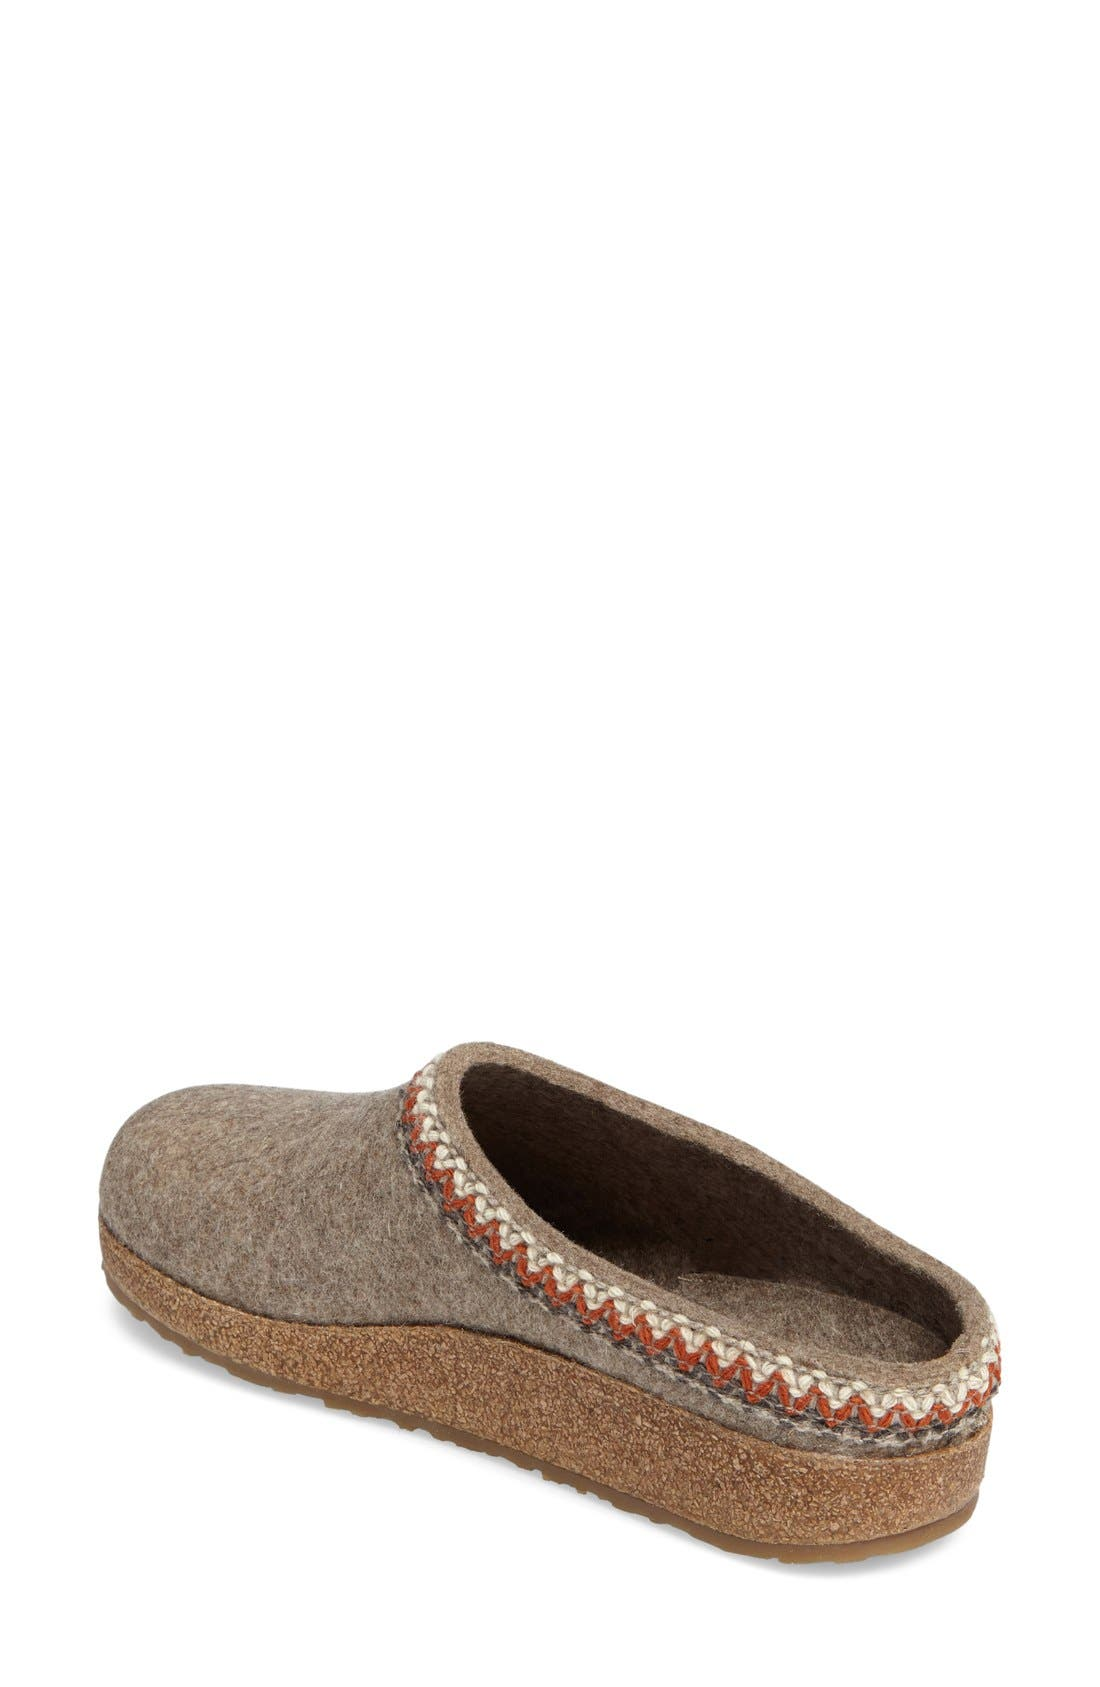 Zigzag Slipper,                             Alternate thumbnail 16, color,